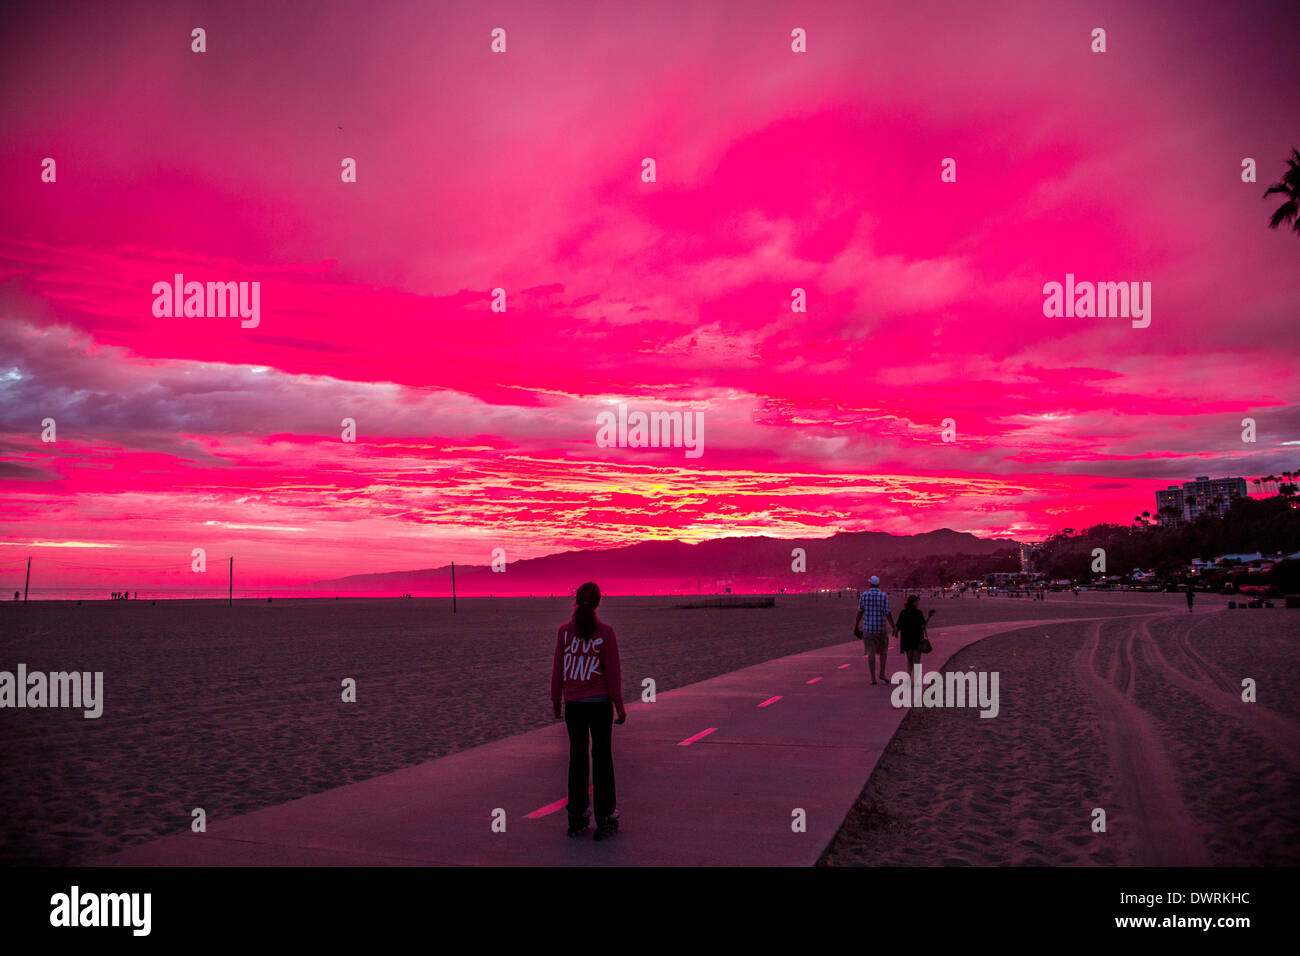 a-spectacular-red-sunset-at-the-beach-in